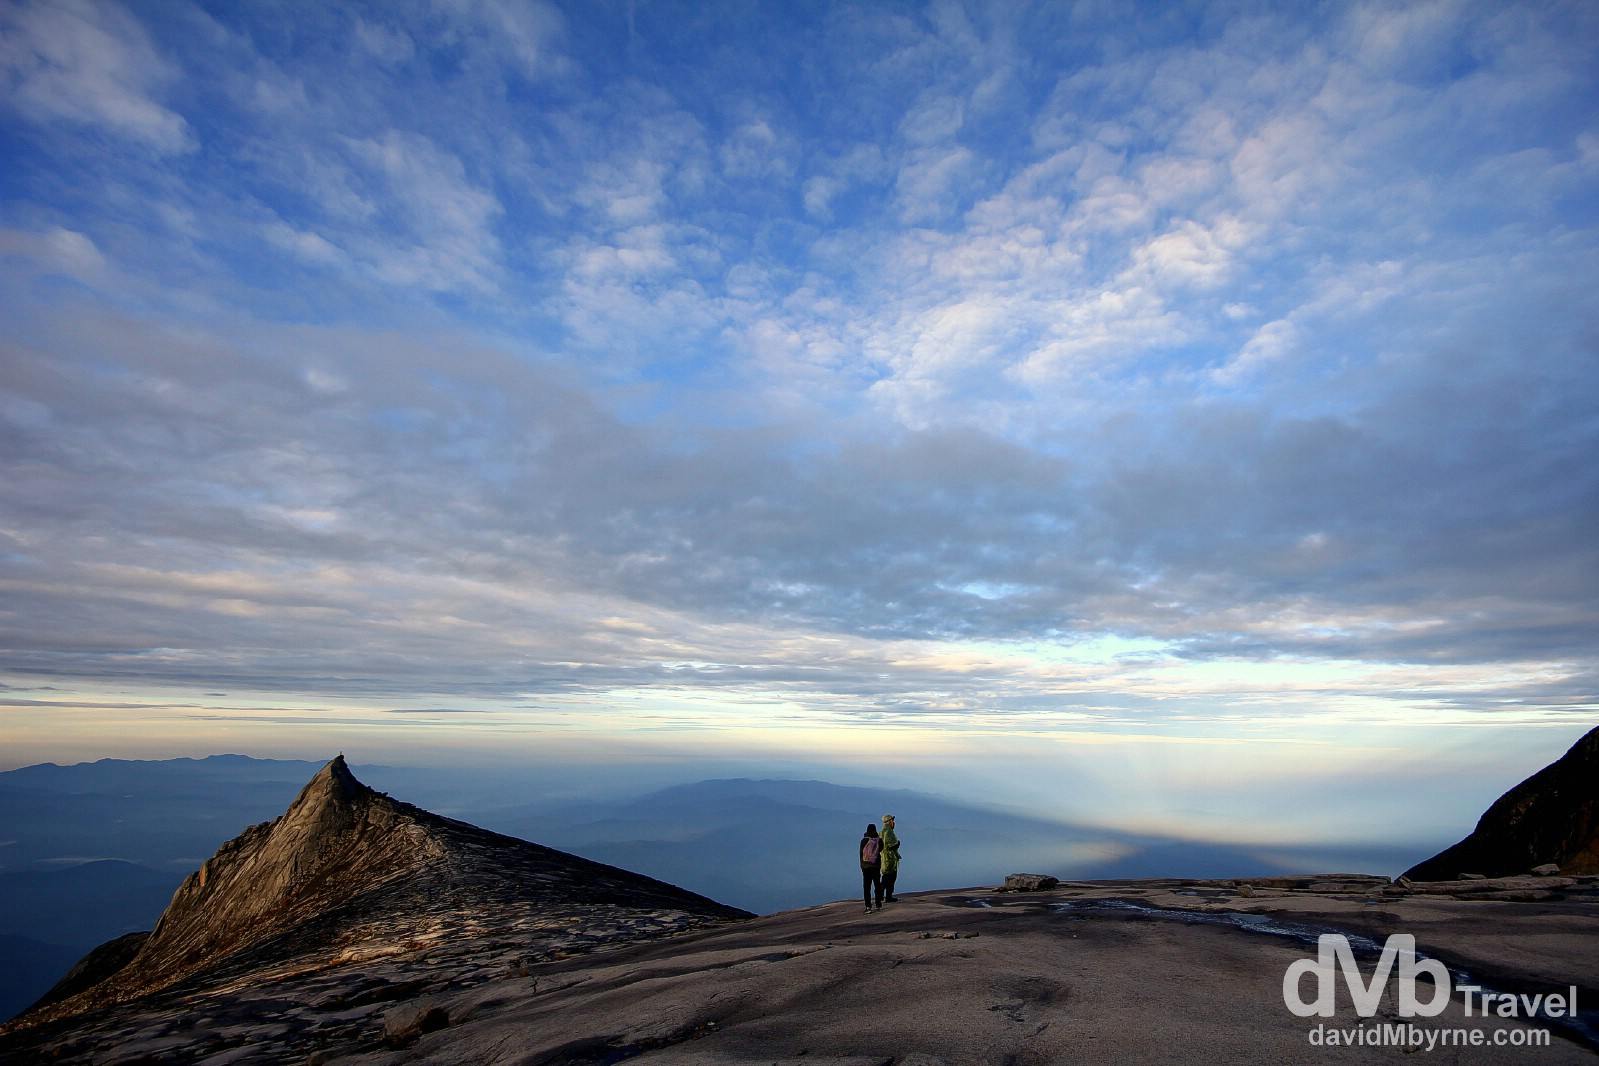 A picture captured on the descent of climbers admiring the post sunrise view over Sabah, Malaysian Borneo, from the granite expanse leading to the summit of Mount Kinabalu. The views of Sabah from this height, stretching out below in all directions, are phenomenal. June 23rd 2012.